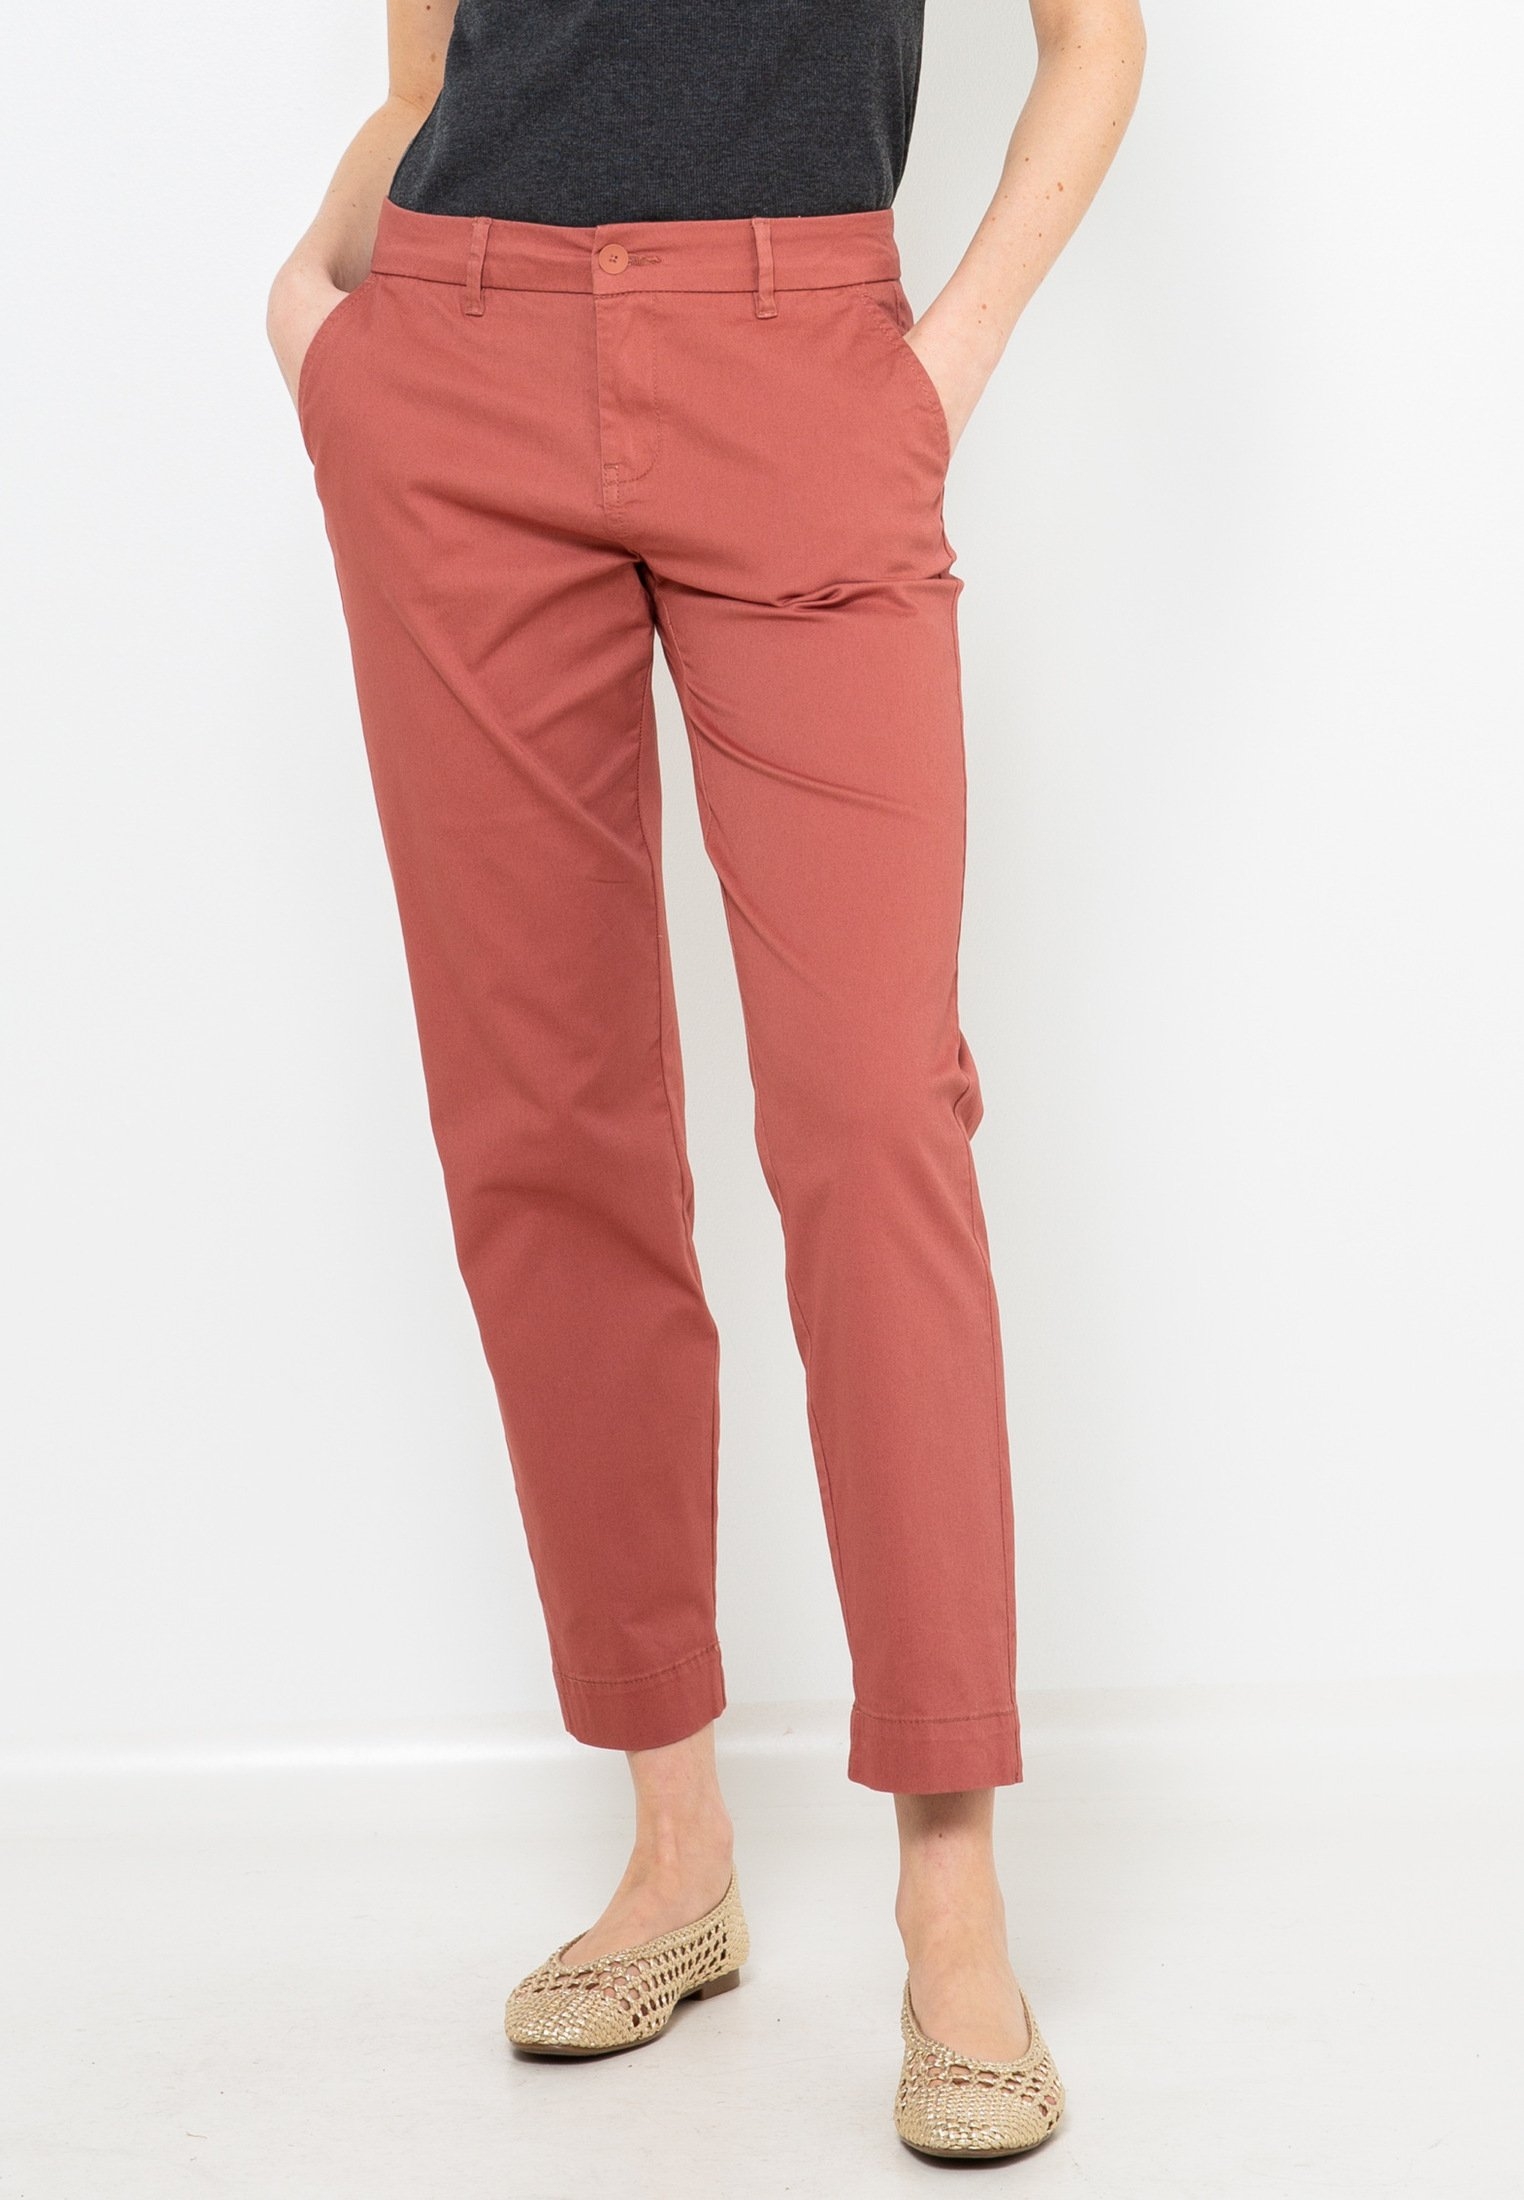 Chinos femme Taille 38 | Tous les articles